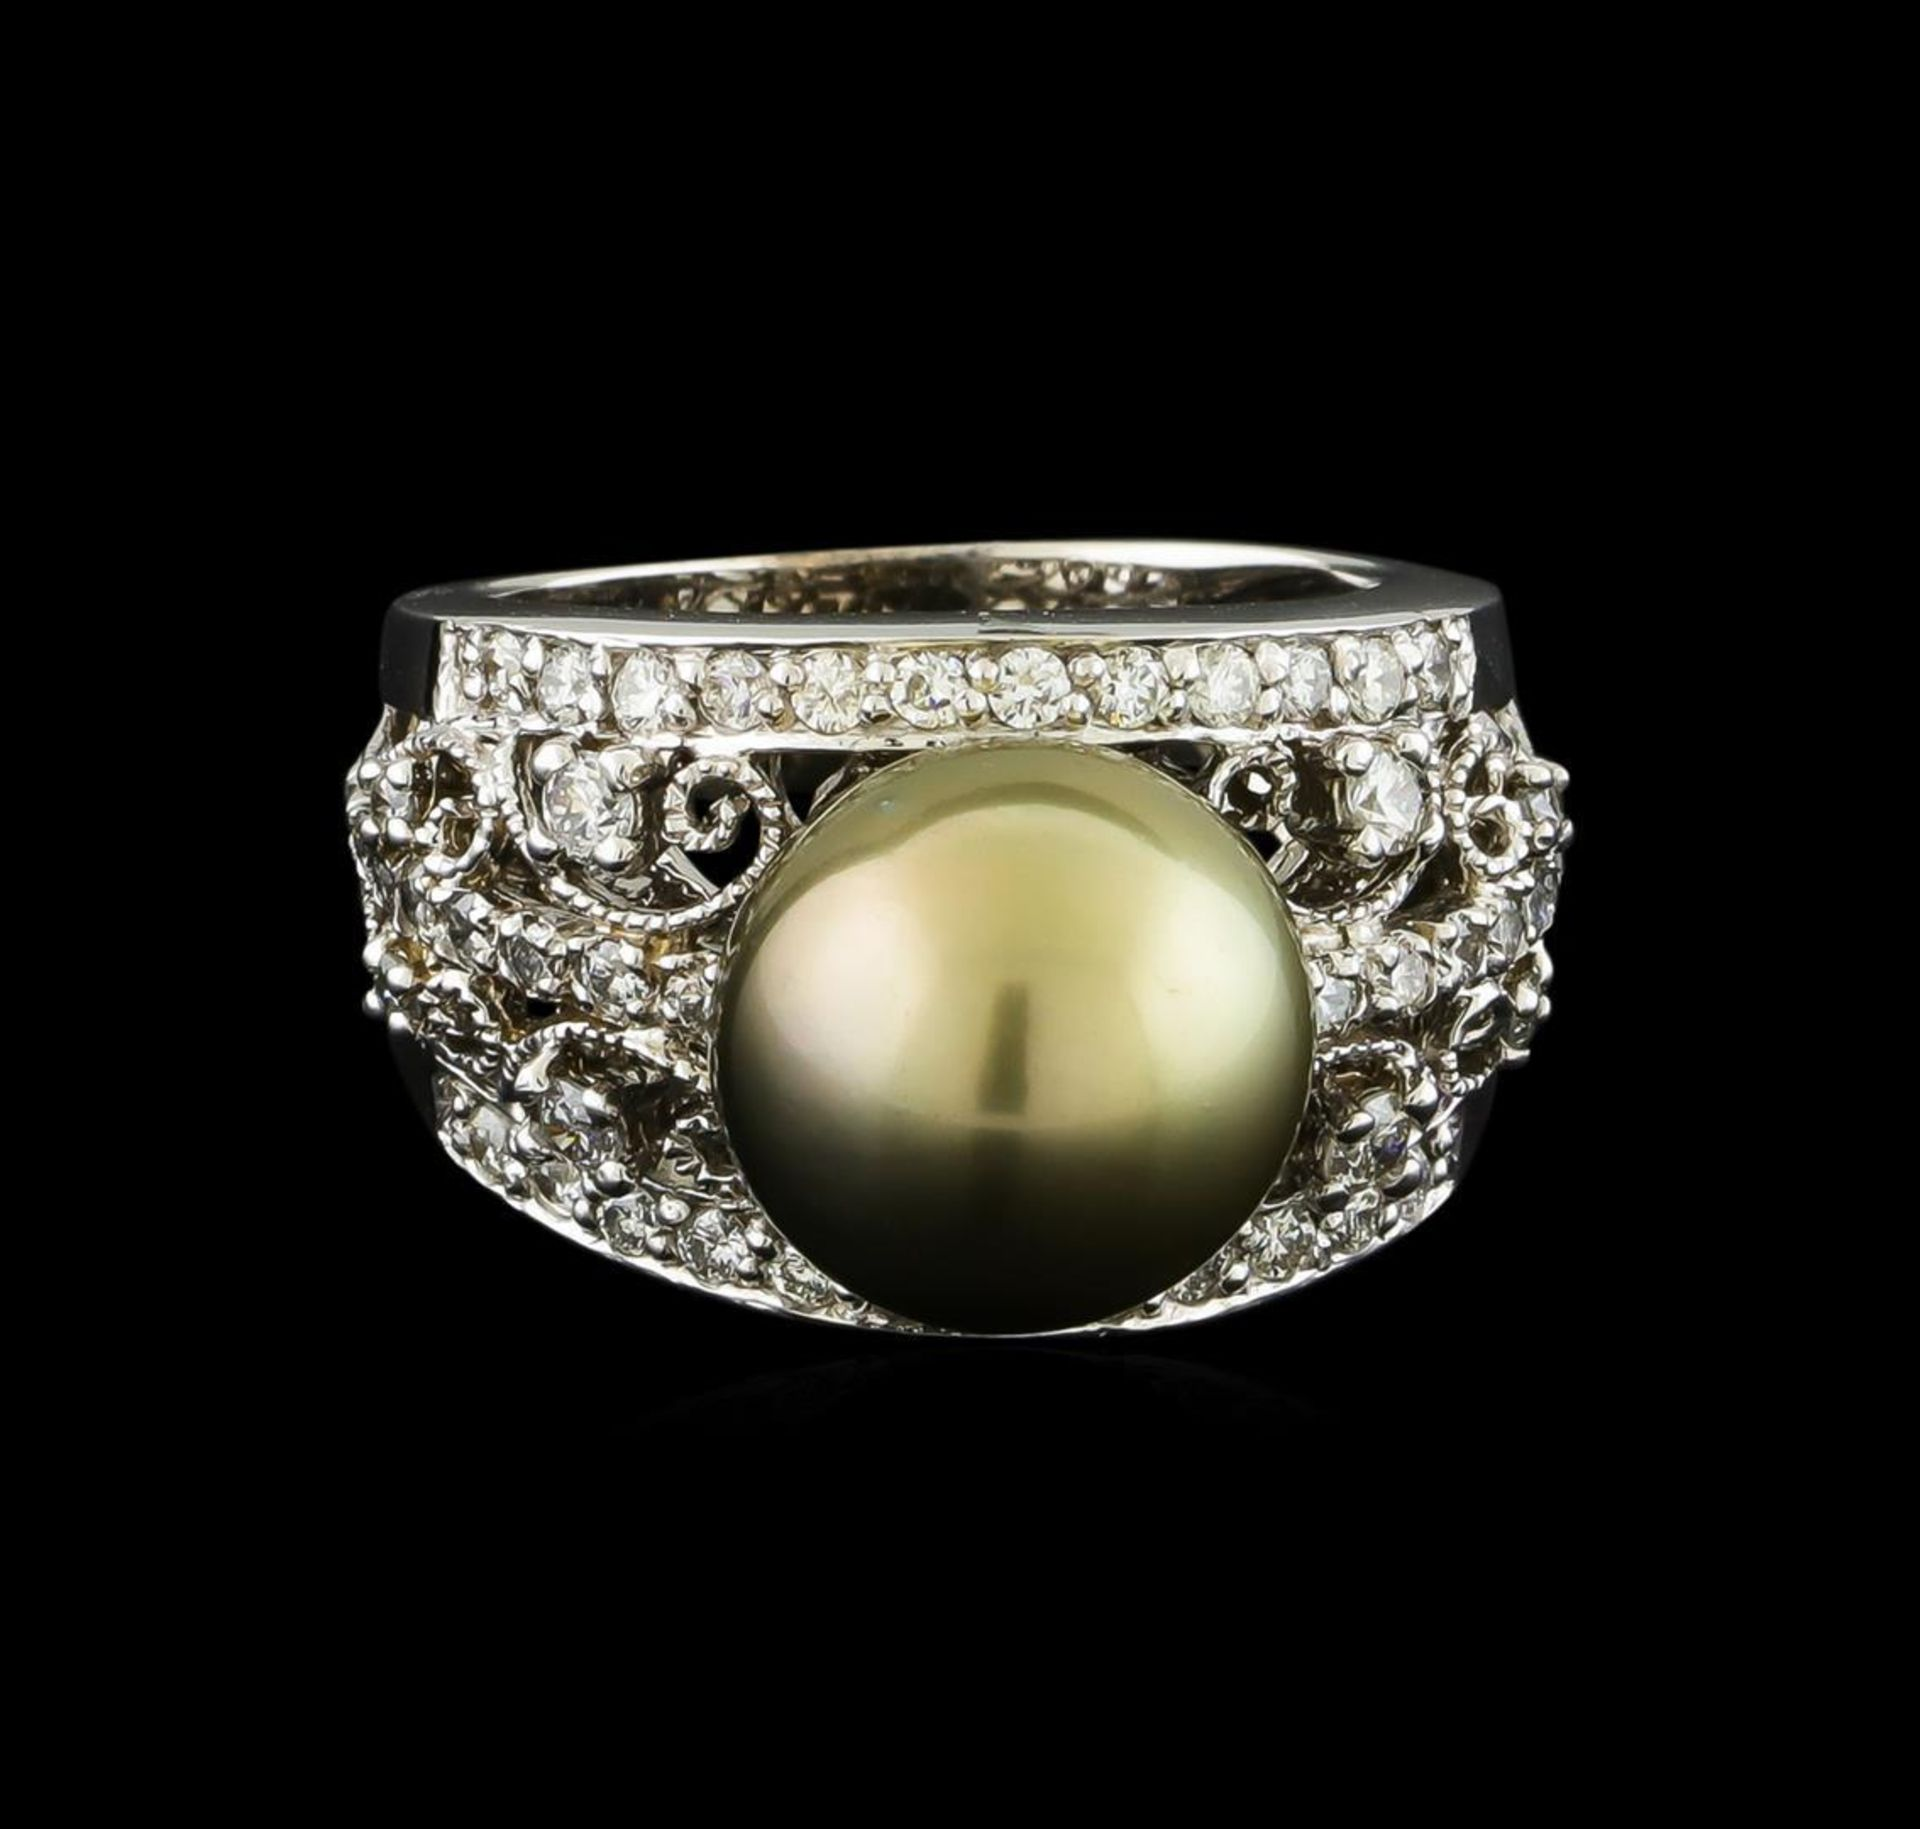 Tahitian Pearl and Diamond Ring - 14KT White Gold - Image 2 of 5